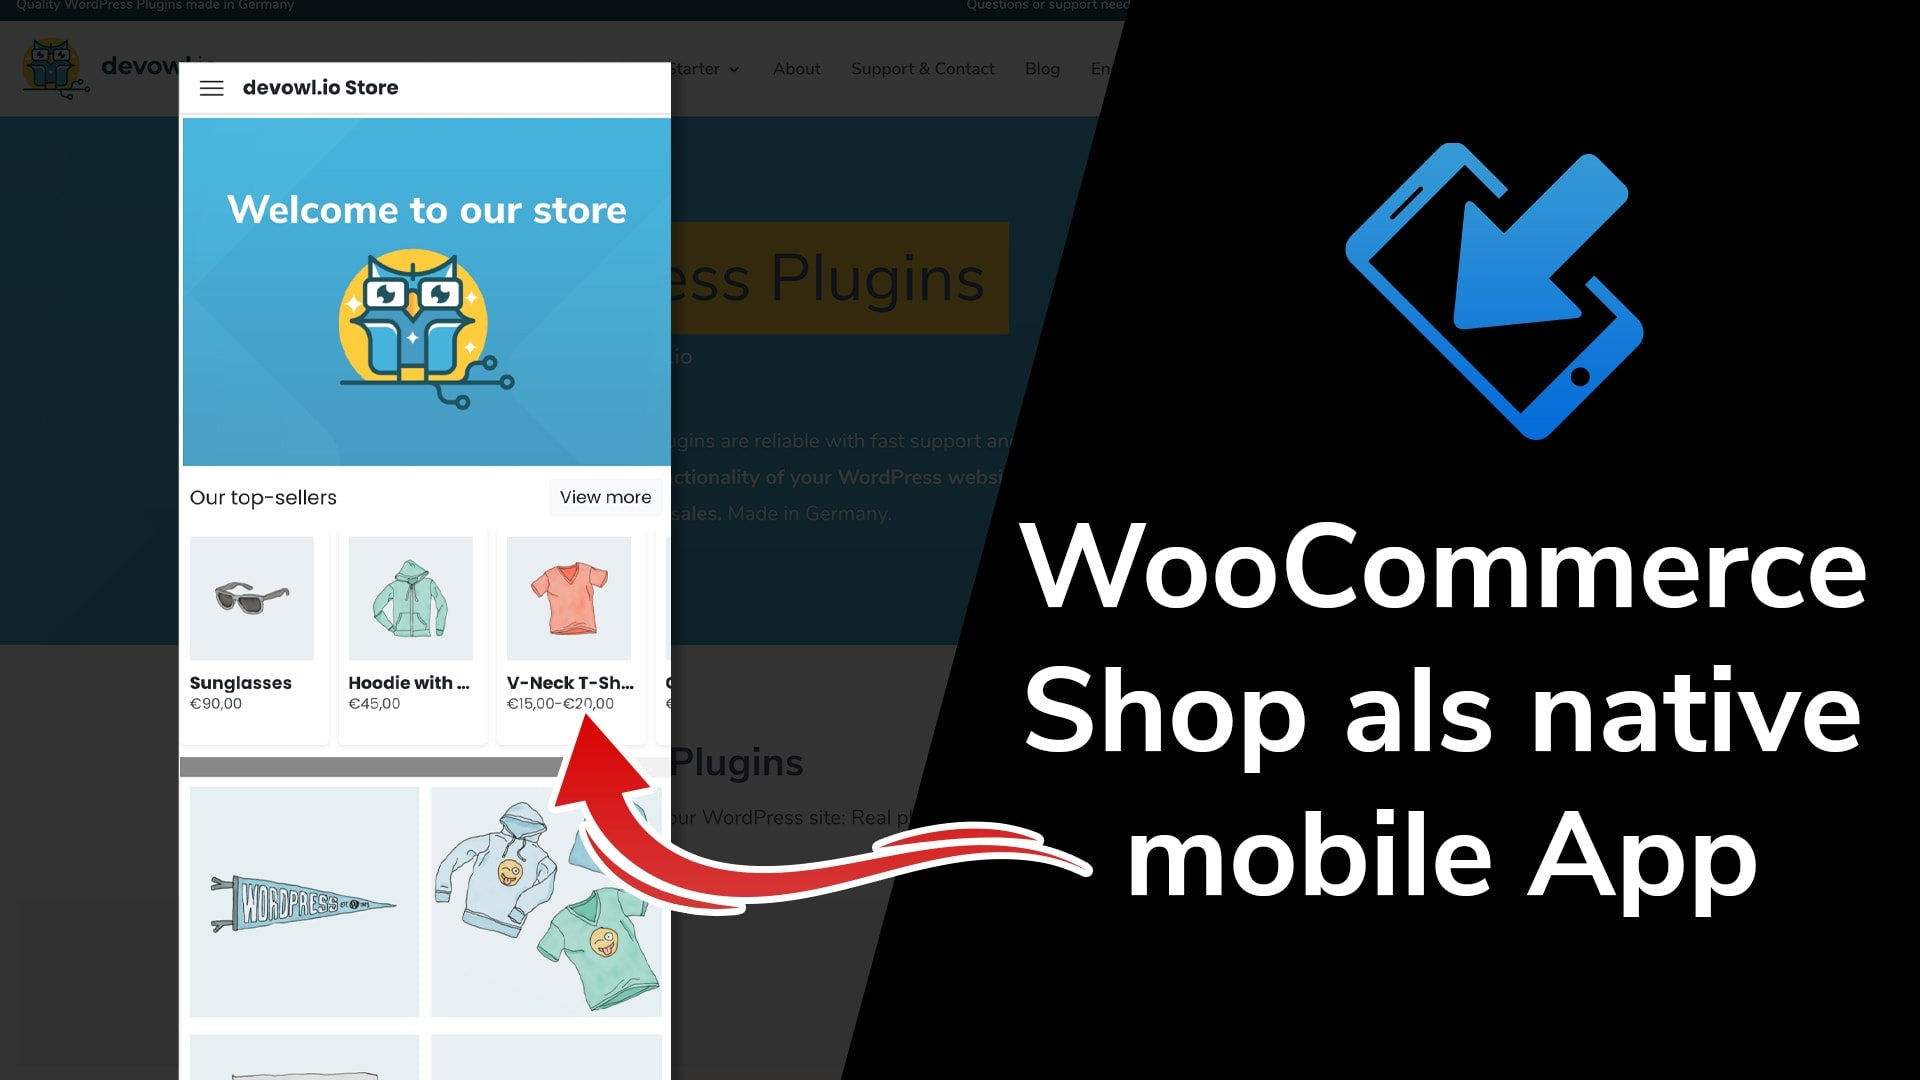 WooCommerce Shop als native mobile App